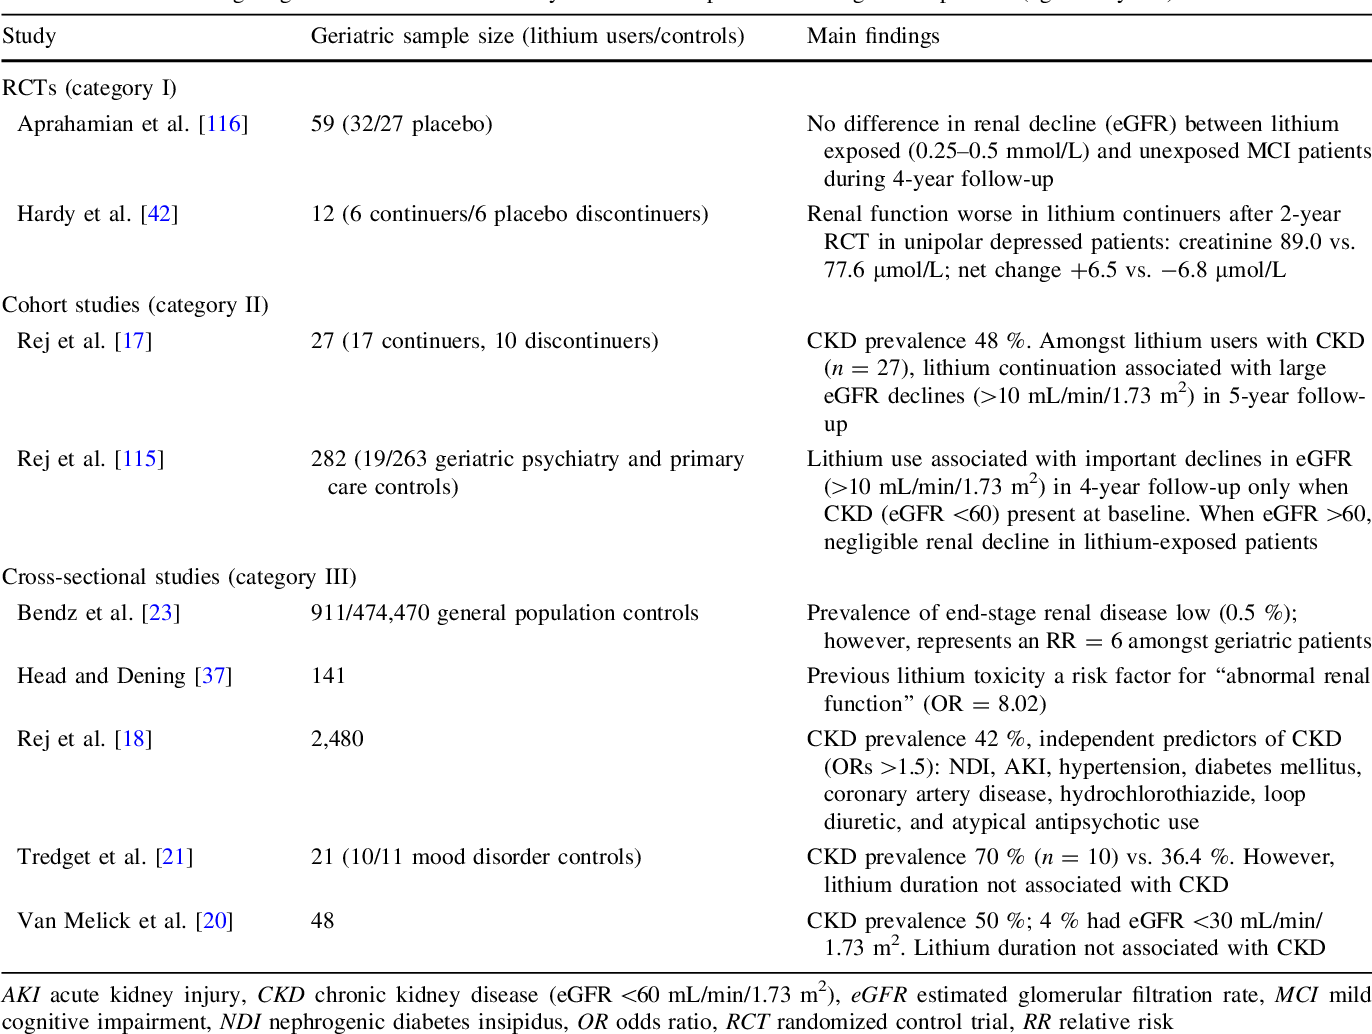 Chronic Kidney Disease In Lithium Treated Older Adults A Review Of Epidemiology Mechanisms And Implications For The Treatment Of Late Life Mood Disorders Semantic Scholar